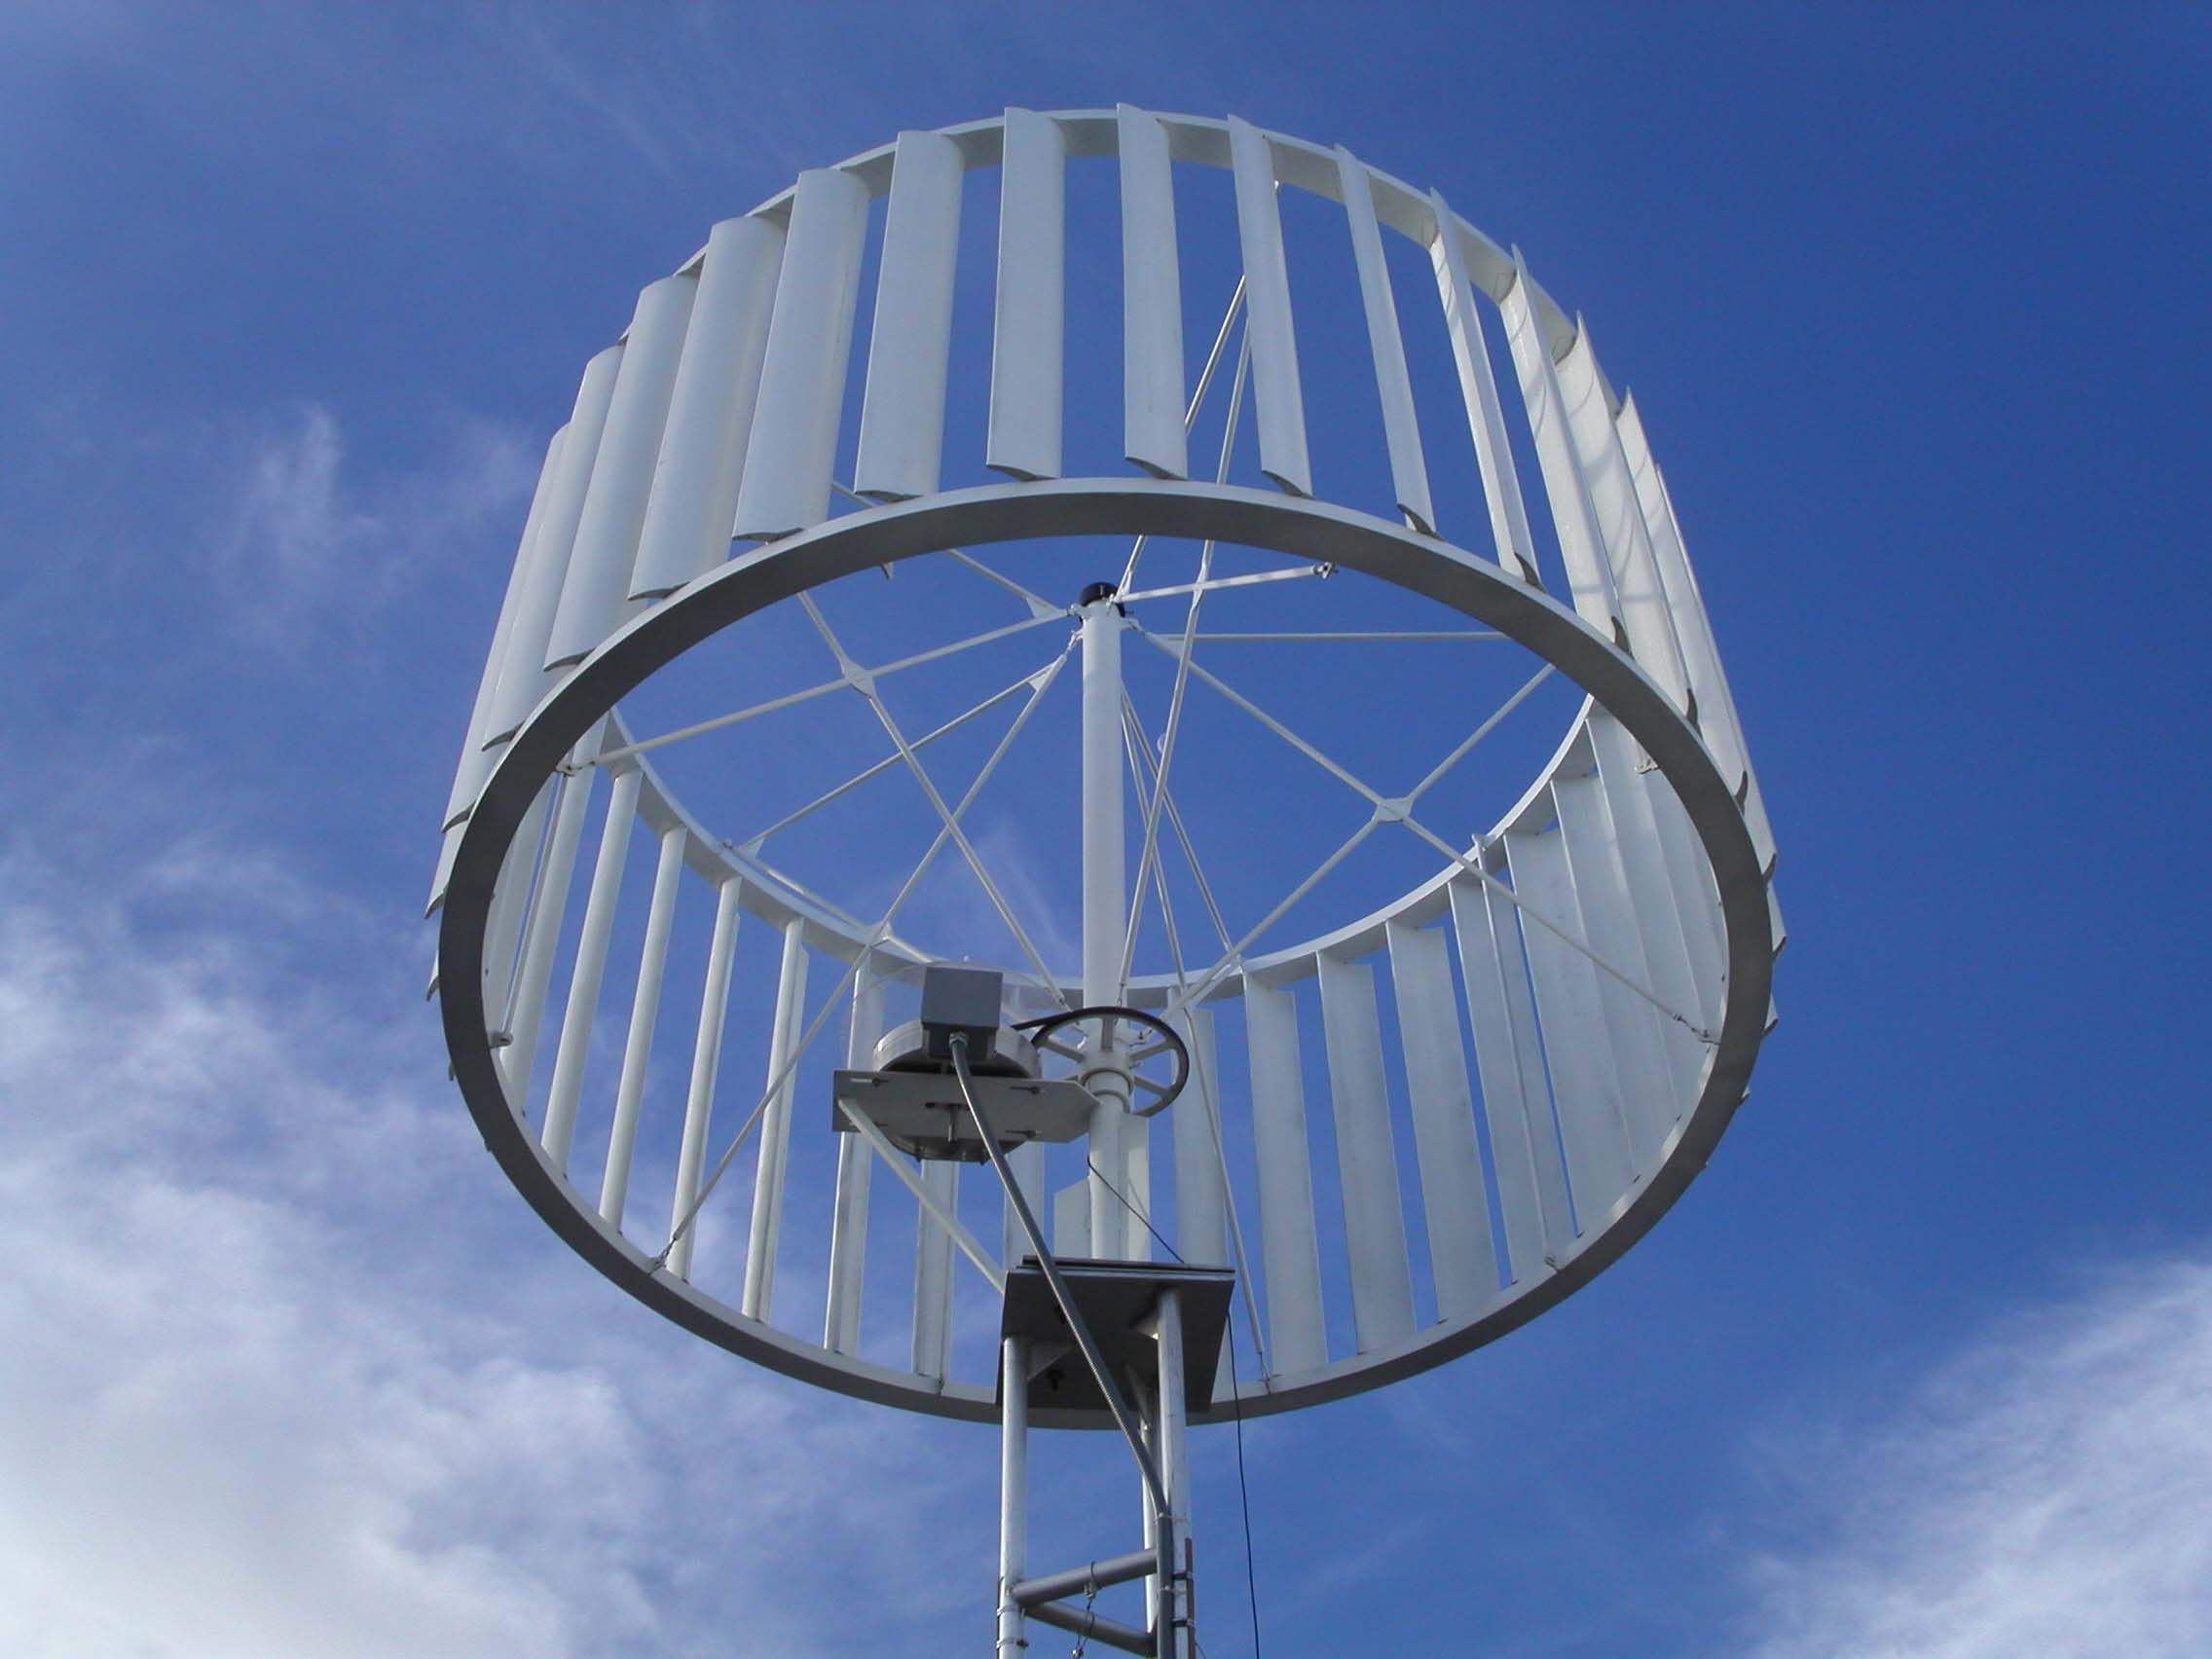 vertical axis wind turbine - Google Search | Energy ...